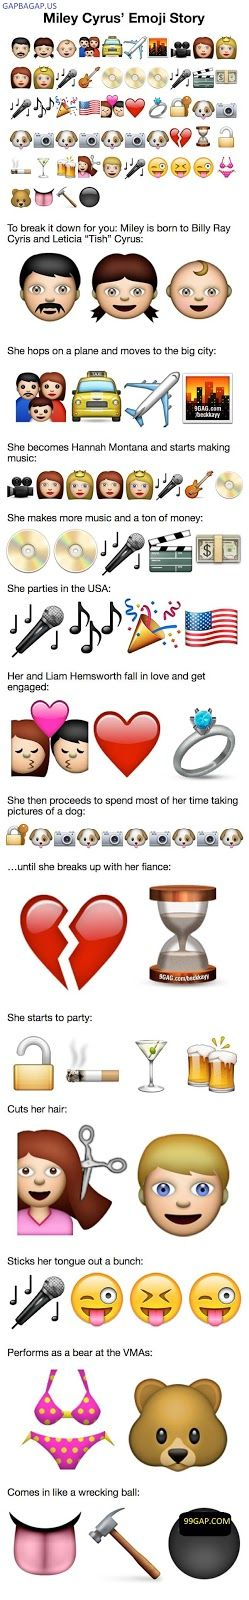 Hilarious Emoji About Miley Cyrus